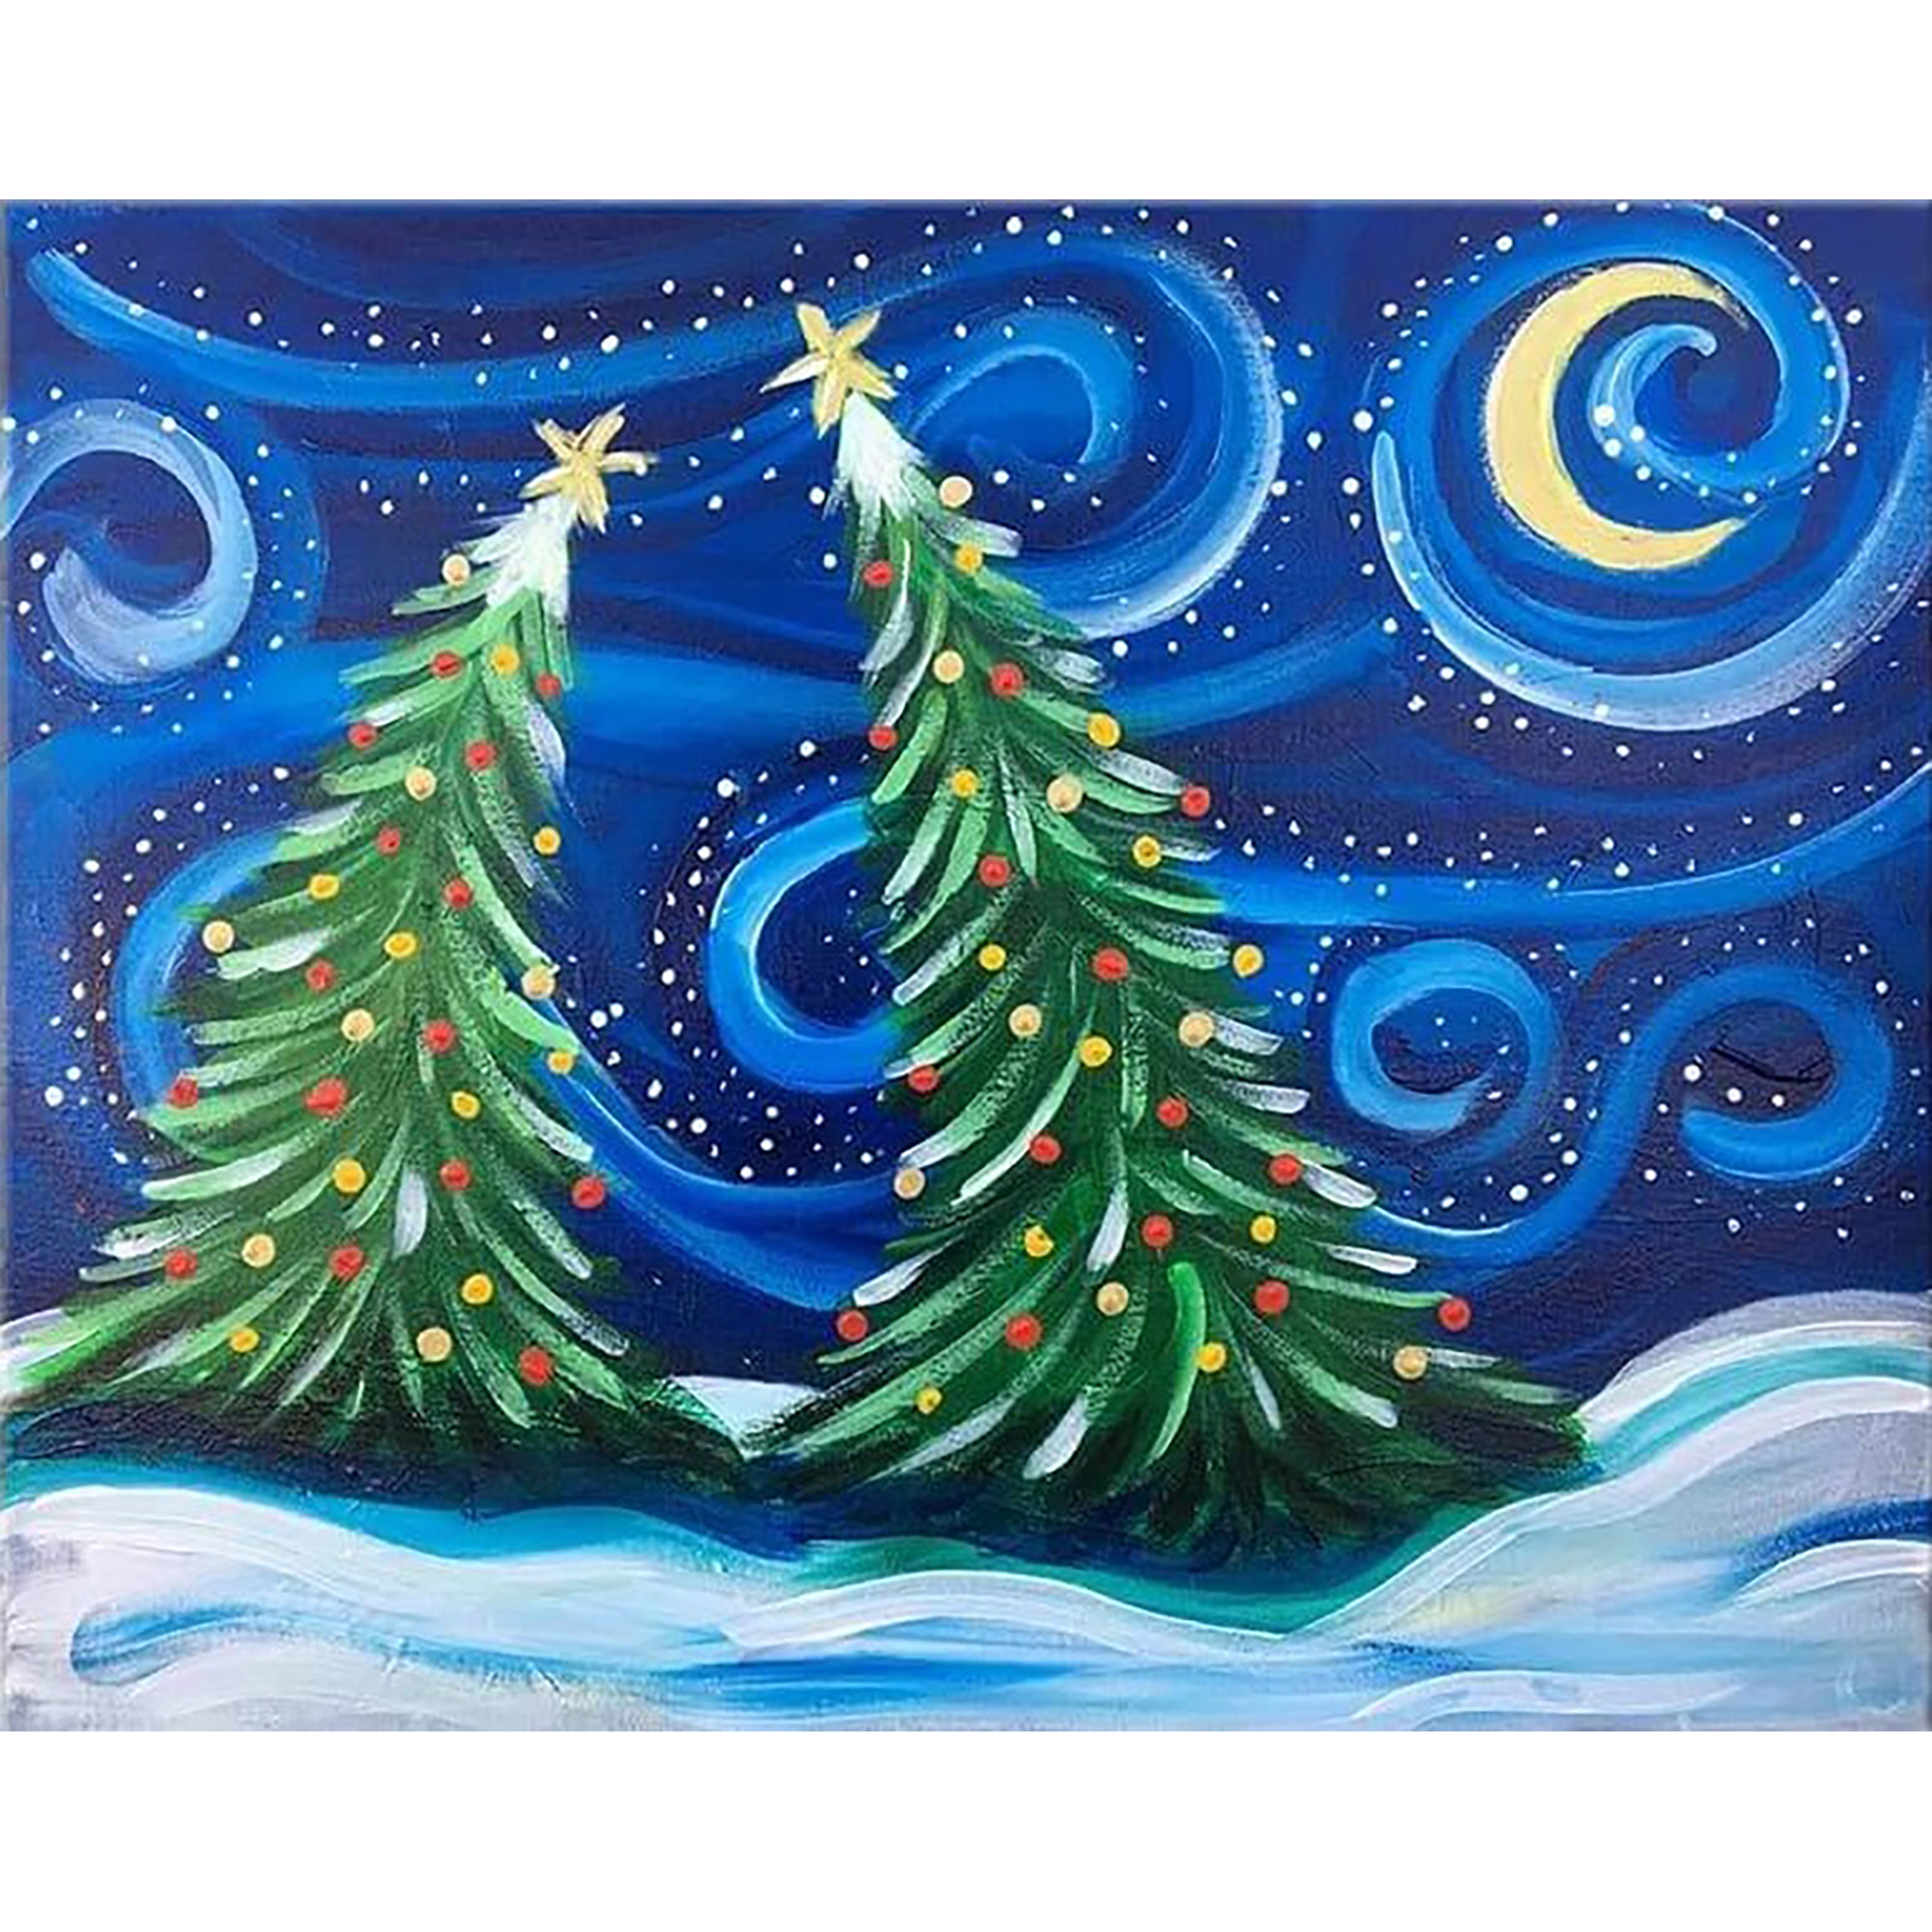 5D Full Drill Diamond Painting Embroidery Christmas Xmas Gift  DIY Kids Room New